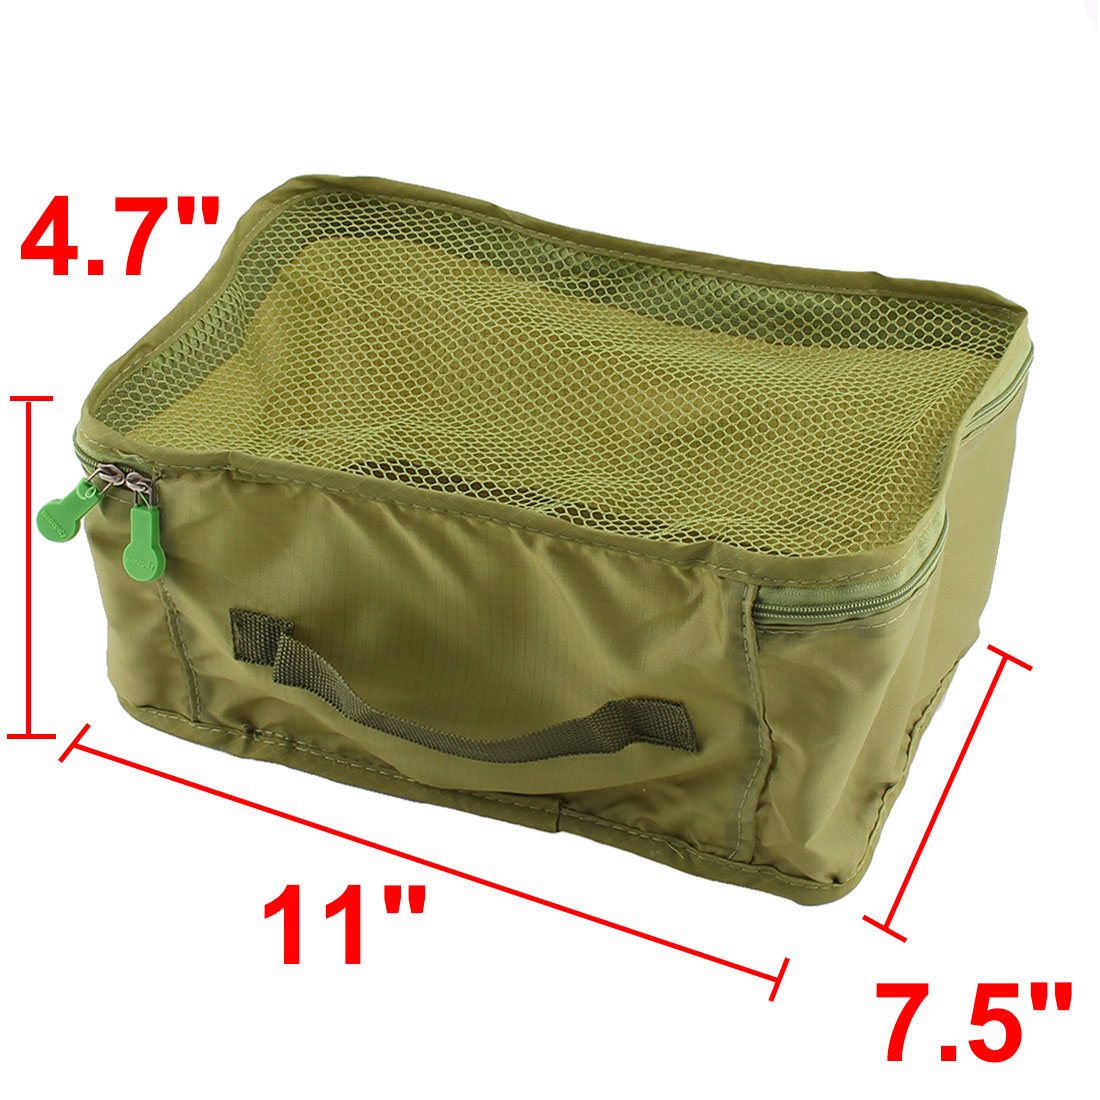 Travel Admission Foldable Zipper Closure Package Pouch Mesh Bag Frost Green - image 4 de 5